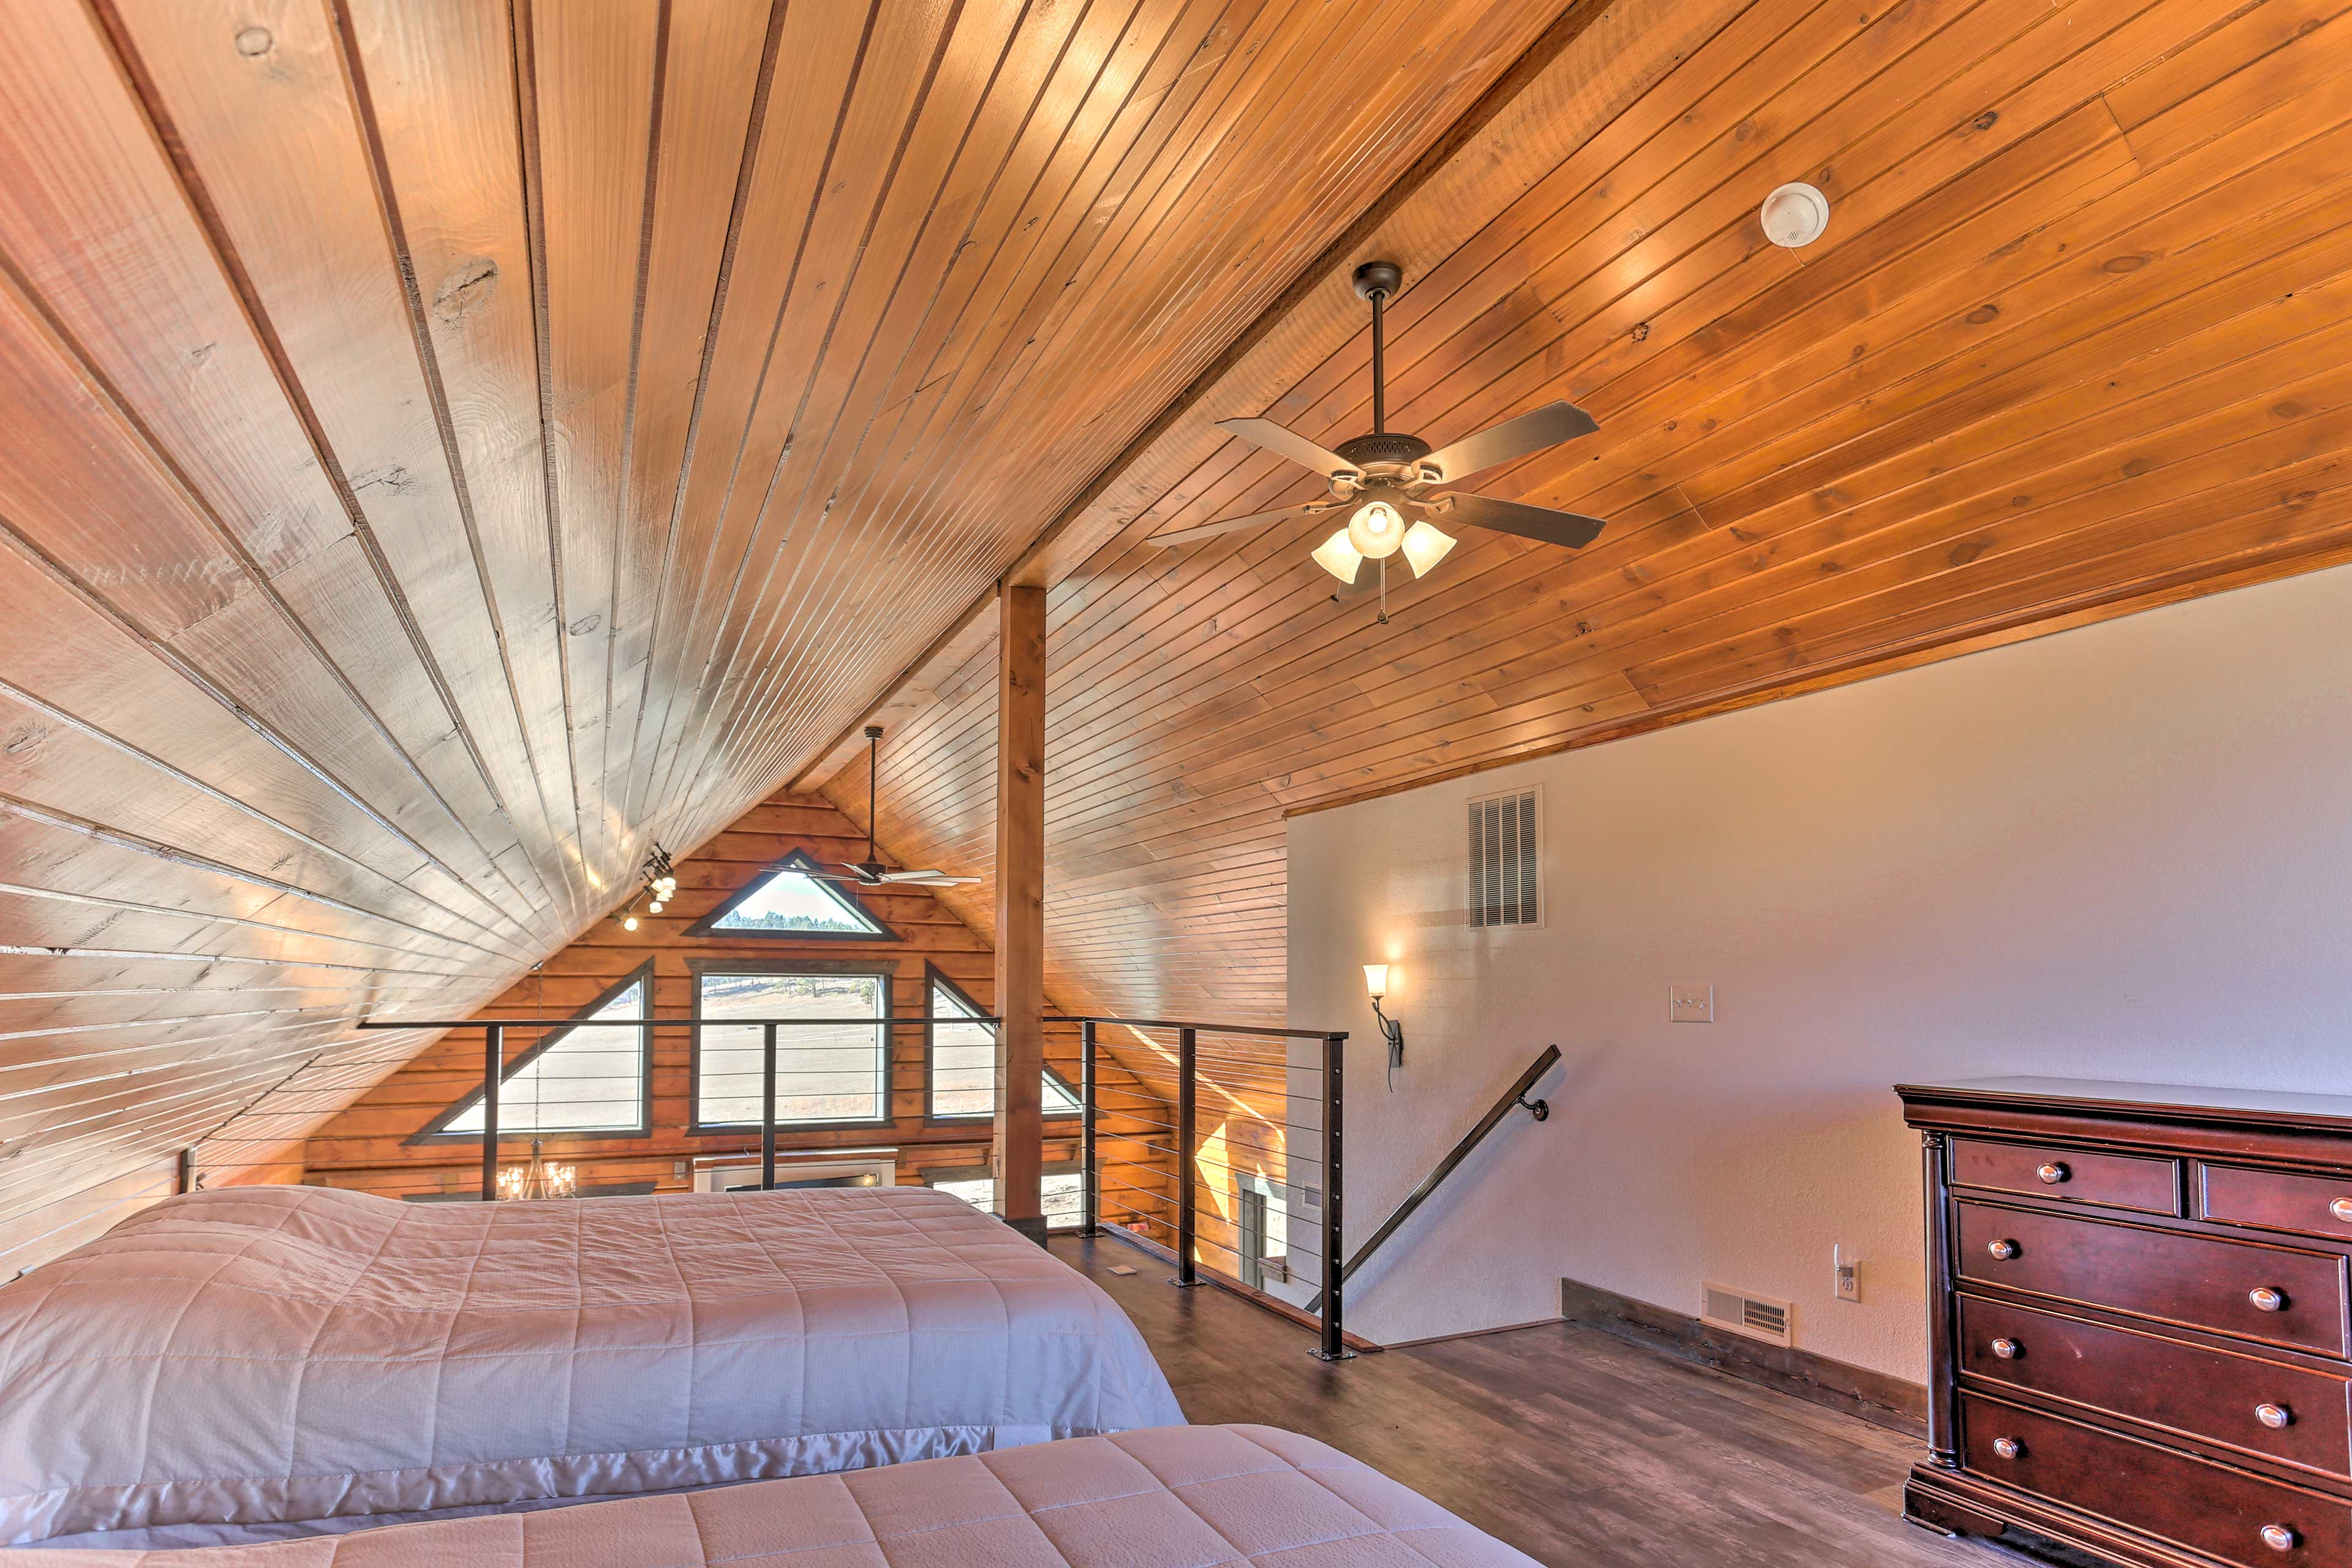 Upstairs, the loft boasts 2 queen beds.